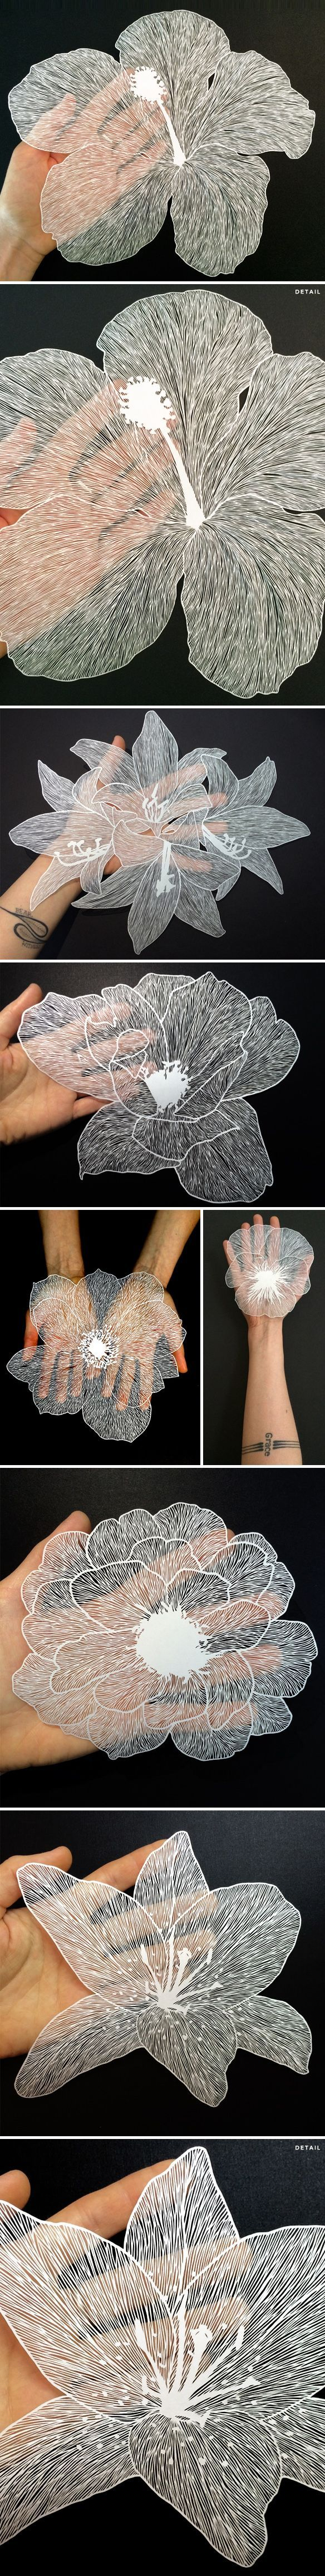 hand cut paper flowers by MAUDE WHITE PAPER ART / ㊙️CUT-PAPER ART / PAPER ART IDEAS✂️More At FOSTERGINGER At Pinterest✂️